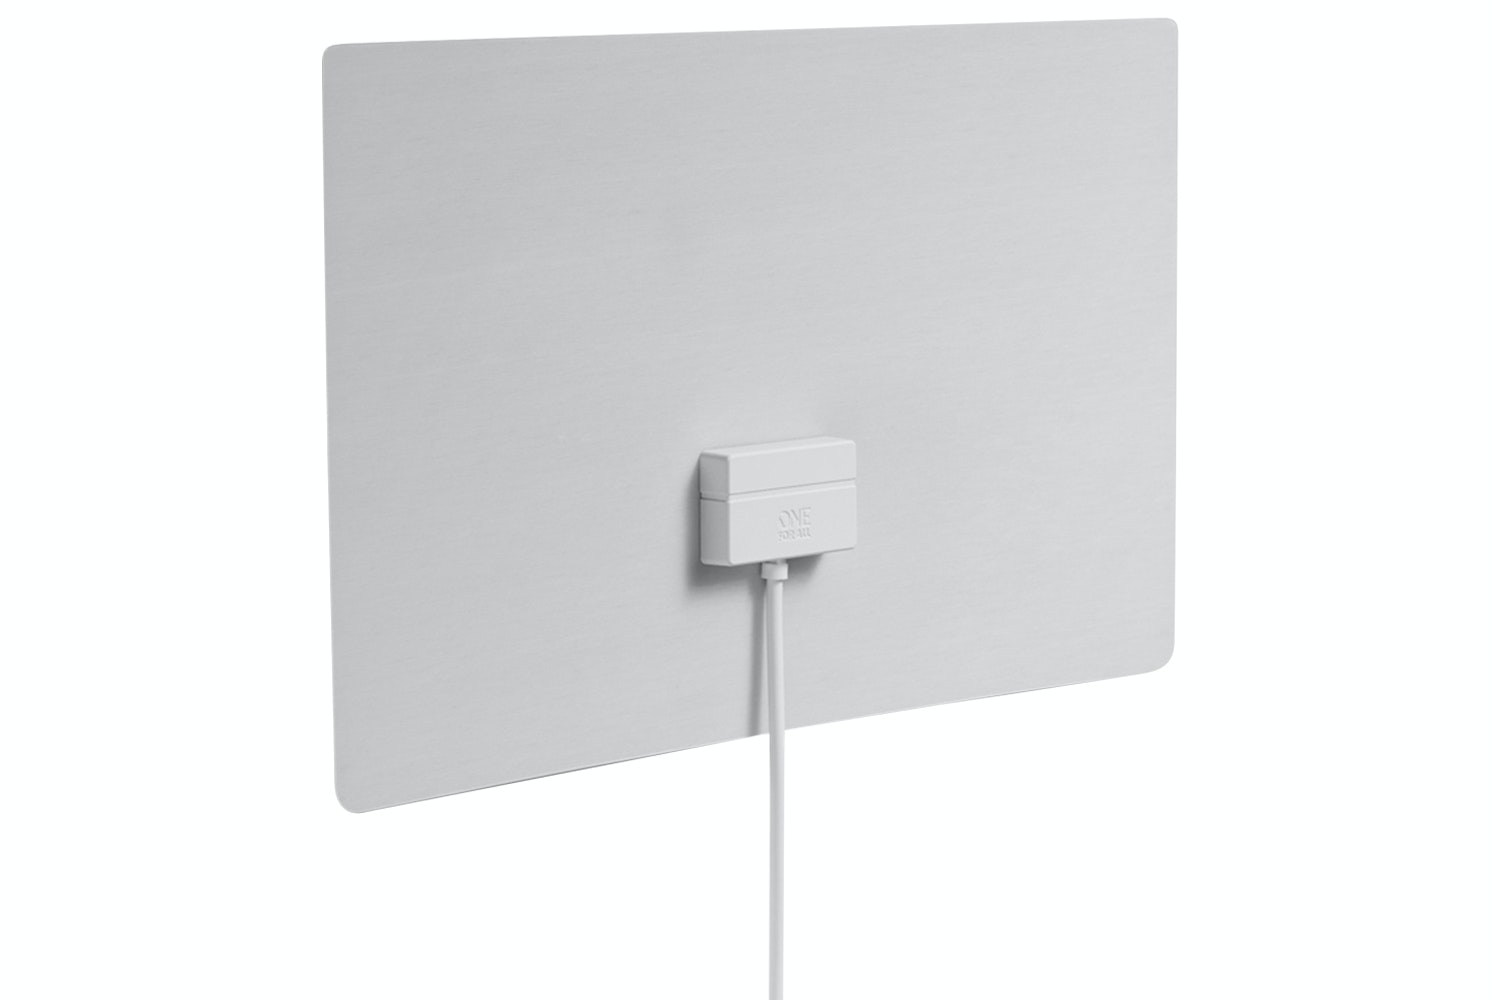 One For All SV 9440 Amplified Indoor Antenna